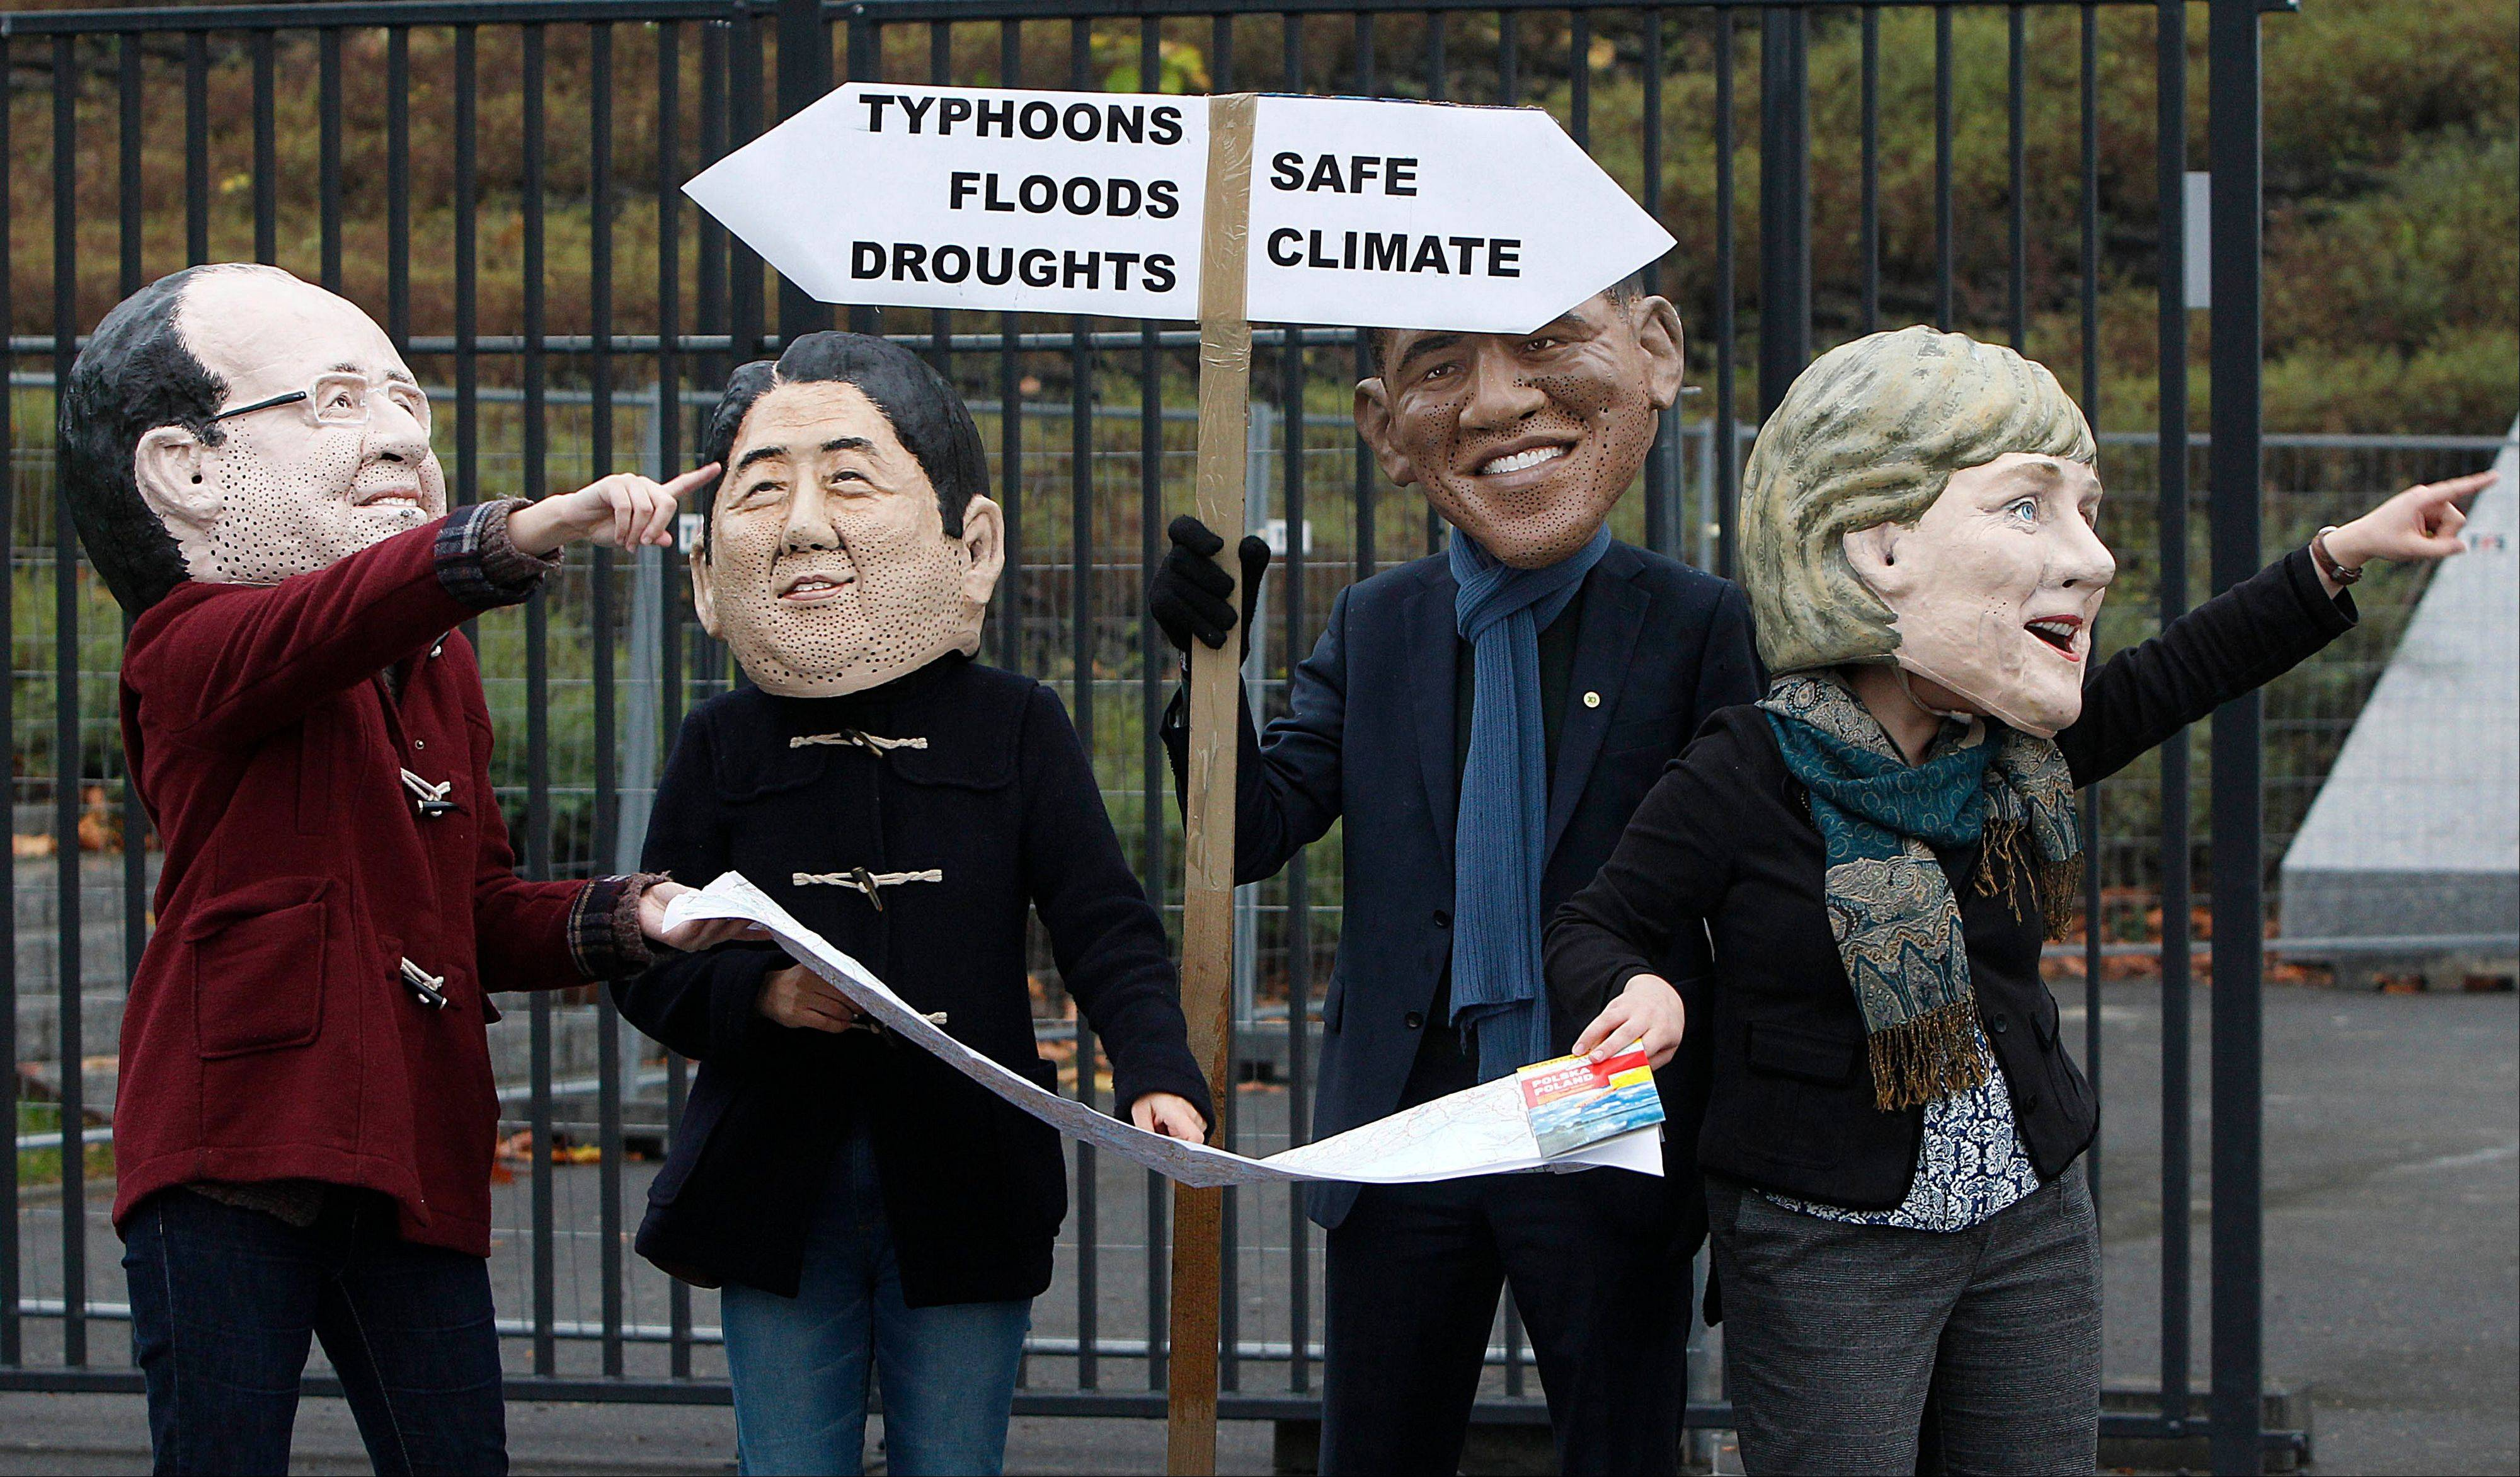 Climate activists protest acting in the role of world leaders who search for a way, in front of the U.N. climate change conference in Warsaw, Poland, Friday. They act, from left to right, as French President Francois Hollande, Japan's Prime Minister Shinzo Abe, U.S. President Barack Obama and German Chancellor Angela Merkel.